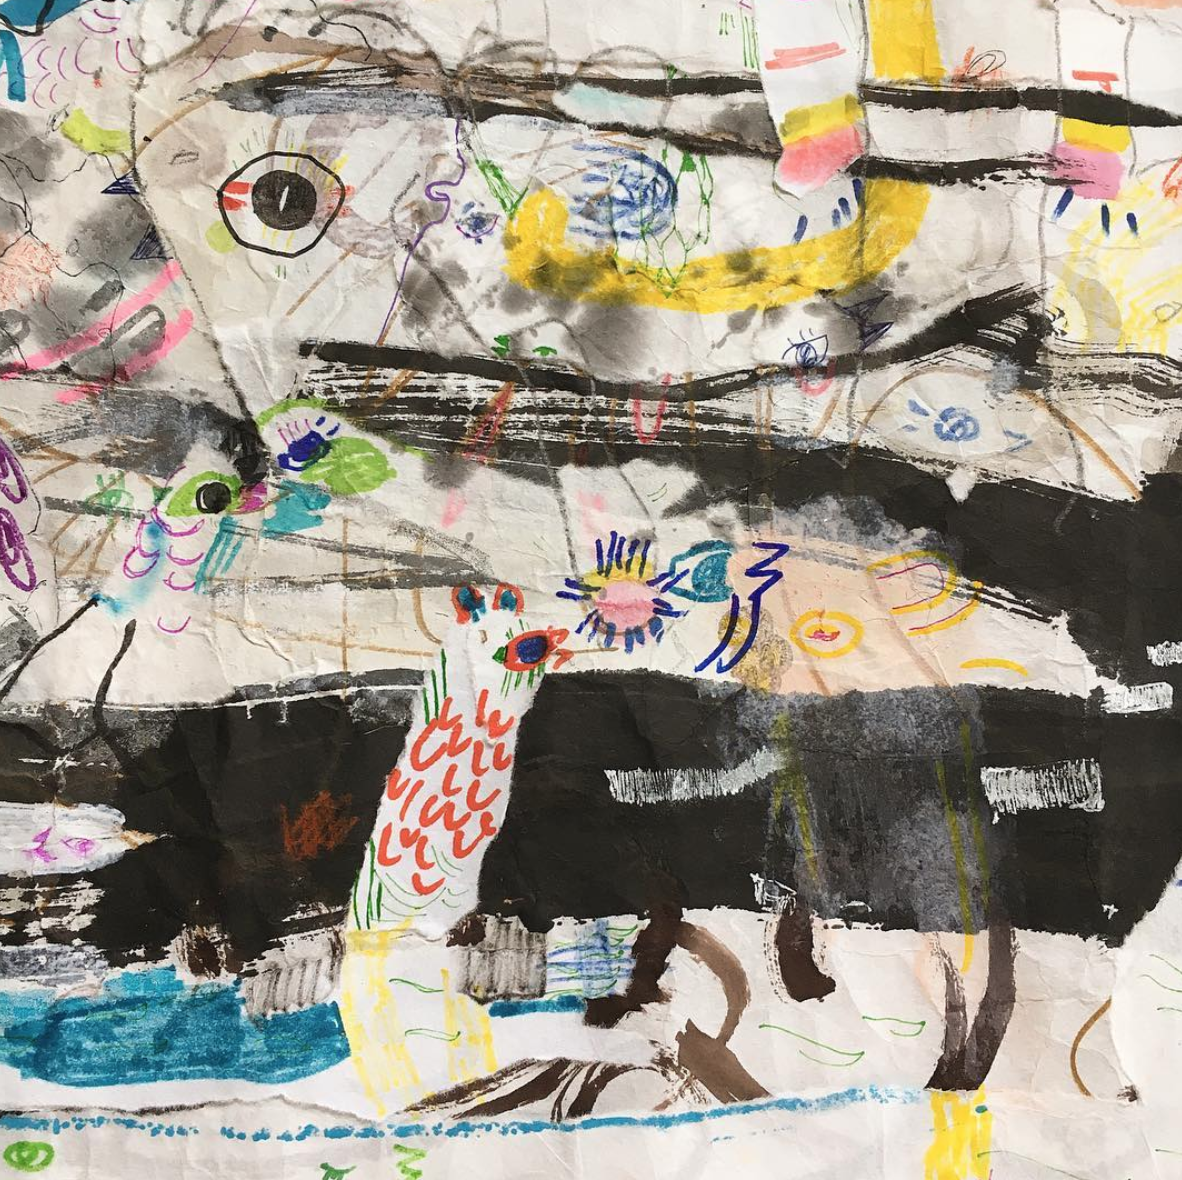 Up Above and All Around, Scroll   Ink, crayon, dye, watercolor, acrylic, pencil, and rice paper on mulberry paper 2.5 x 30 feet*